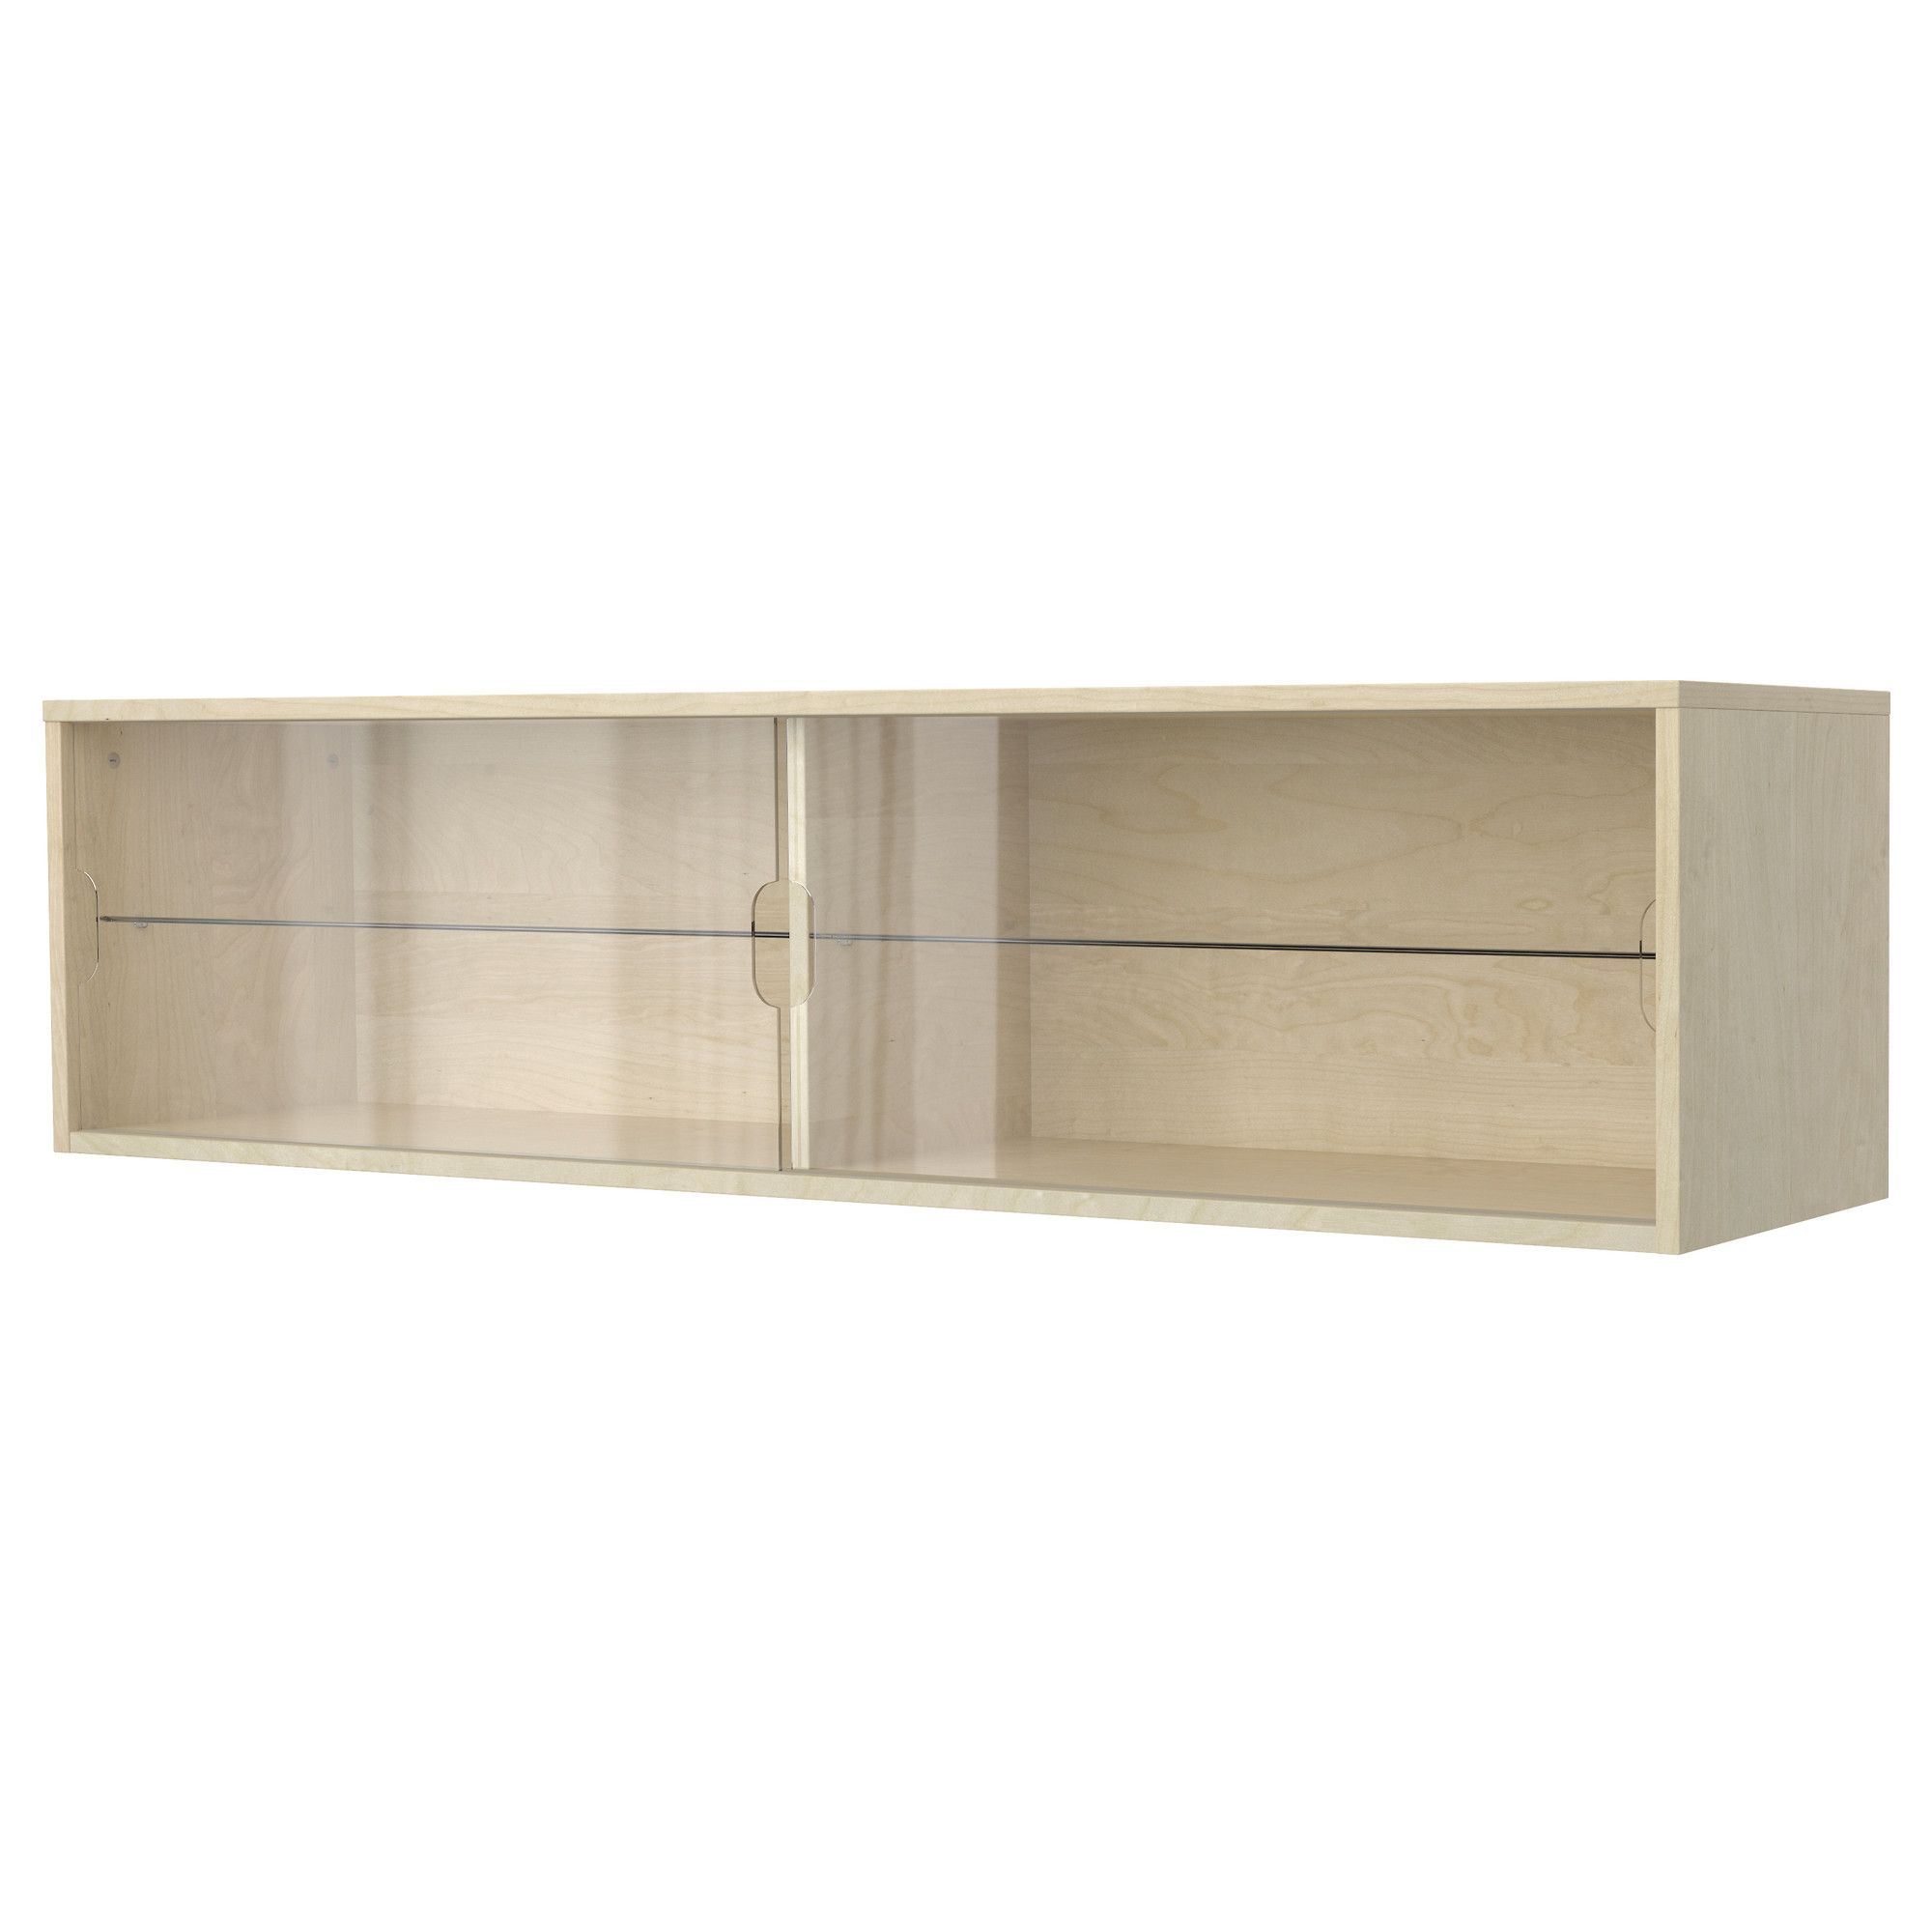 16900 It Goes In The Wall Galant Wall Cabinet With Sliding Doors